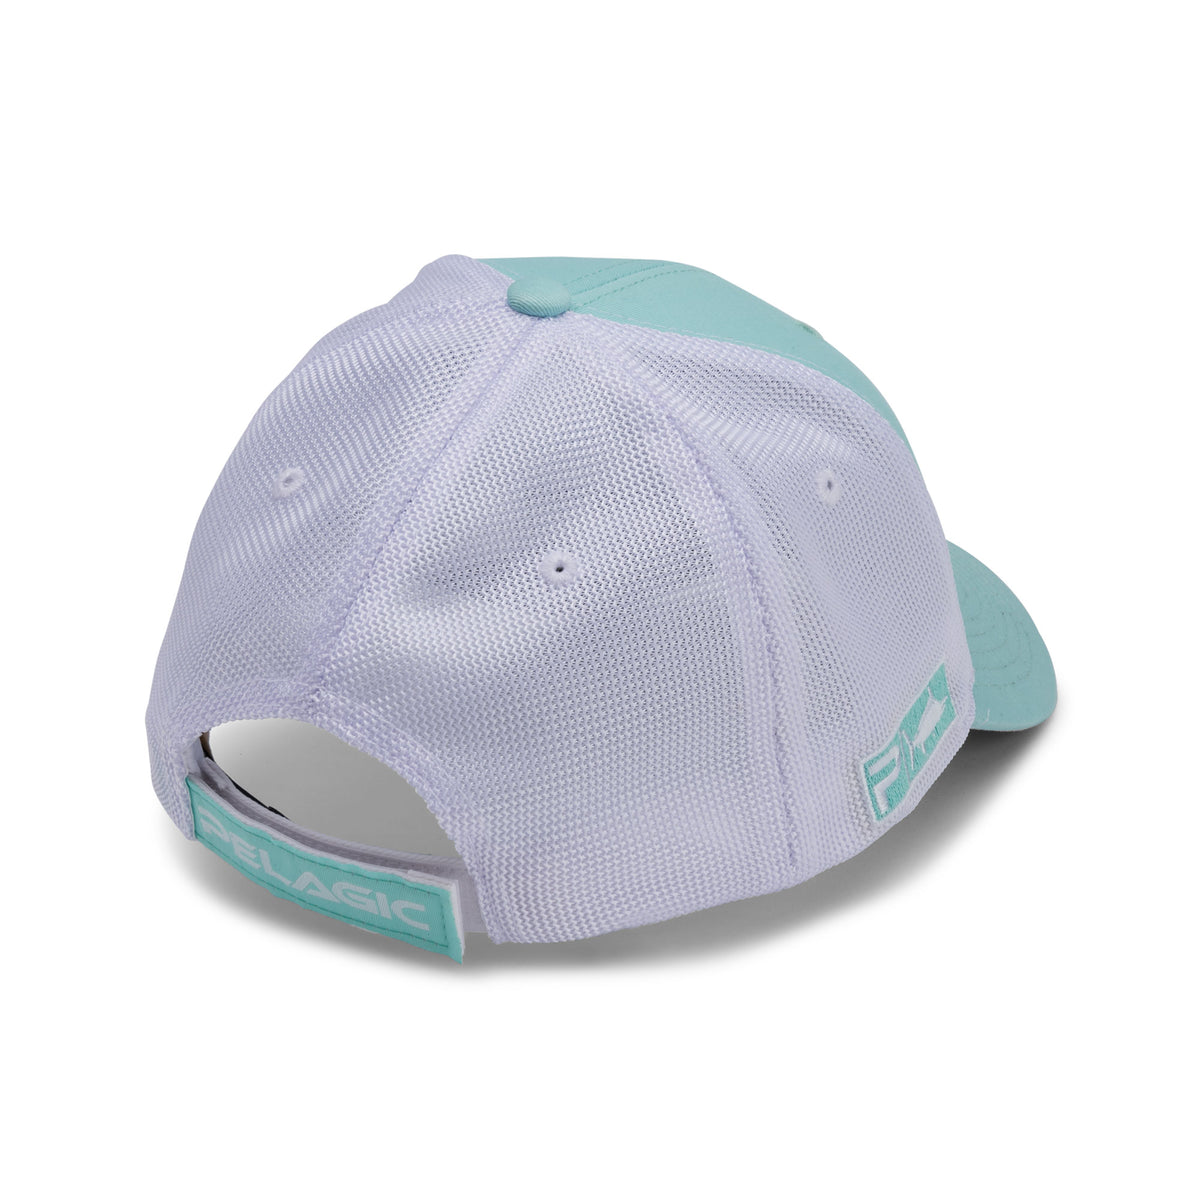 Offshore Fishing Hat Big Image - 2